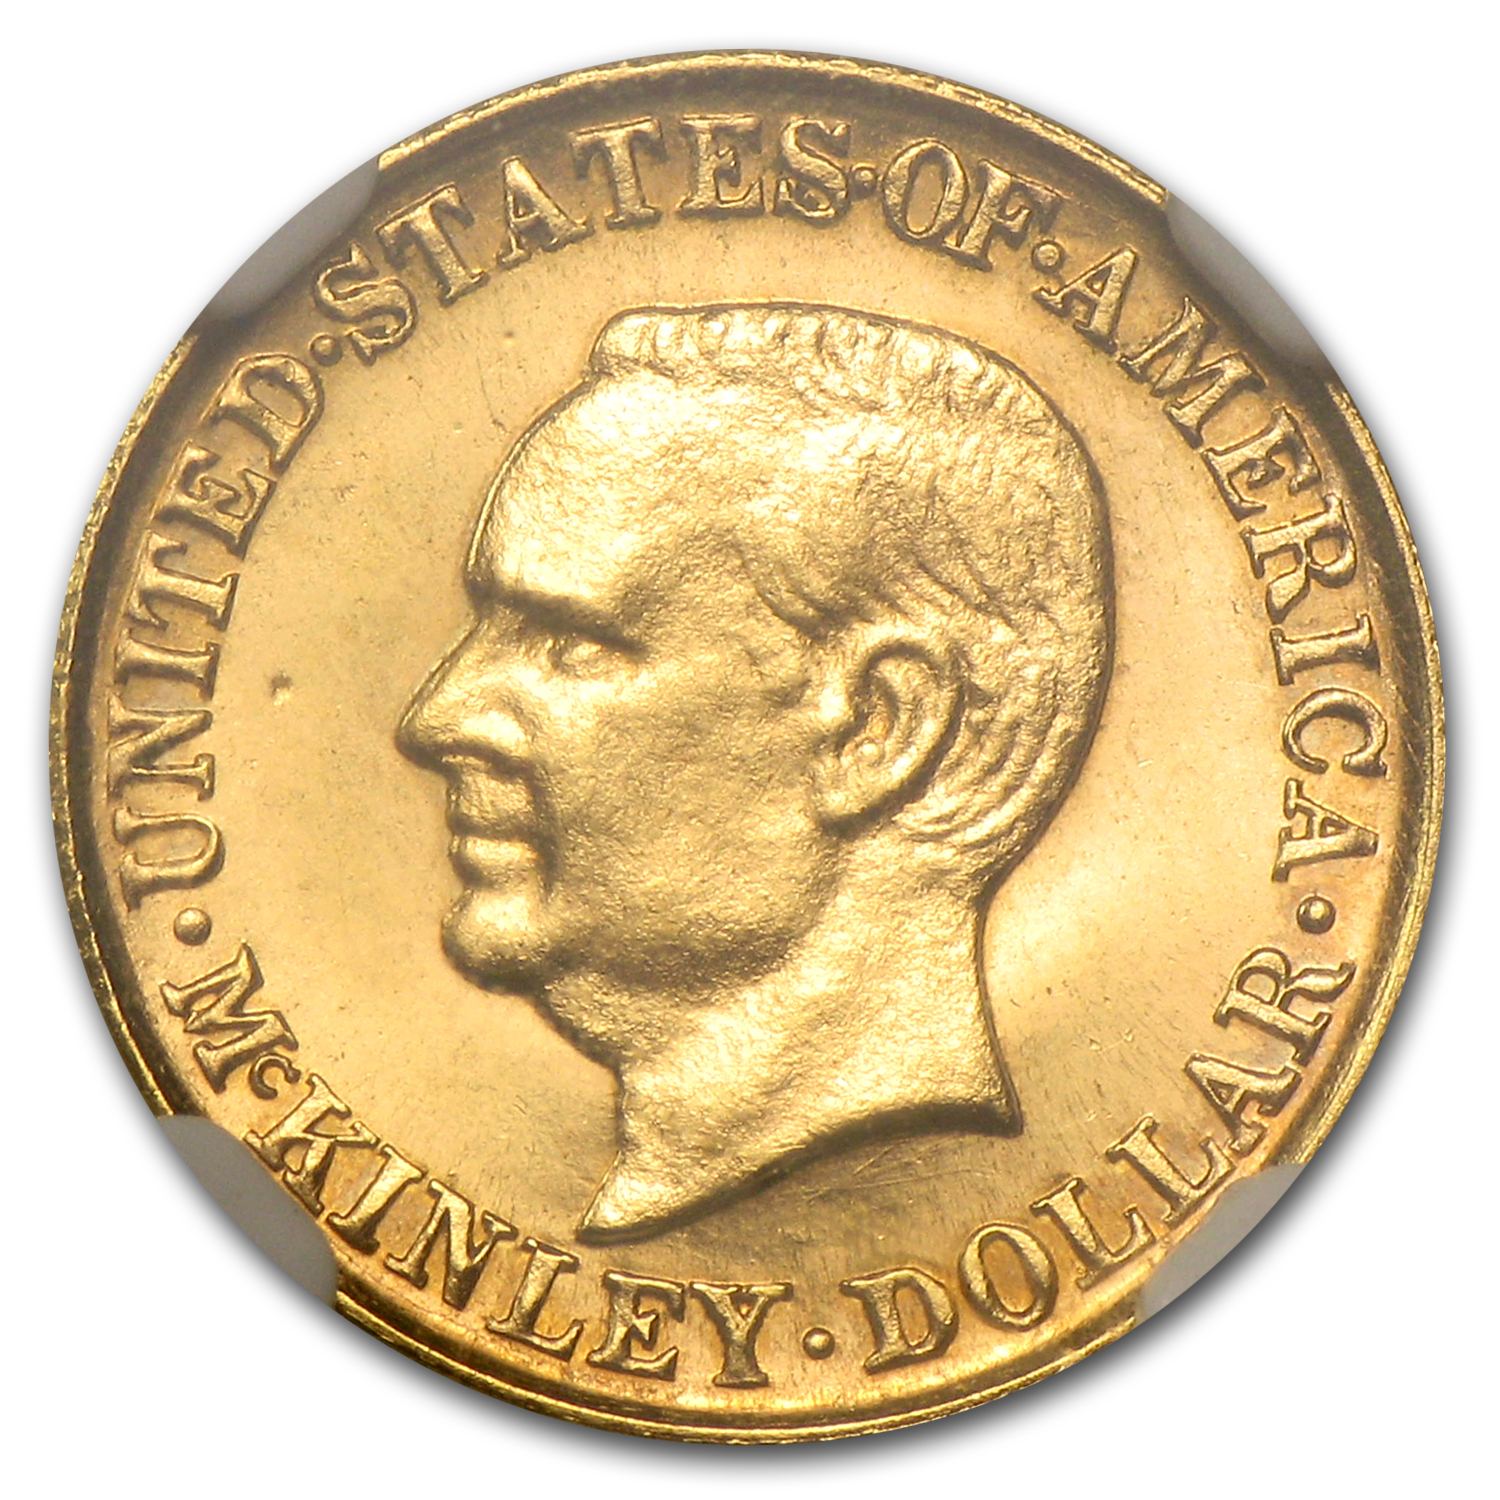 1916 $1.00 Gold McKinley MS-65 &#9733 Star NGC